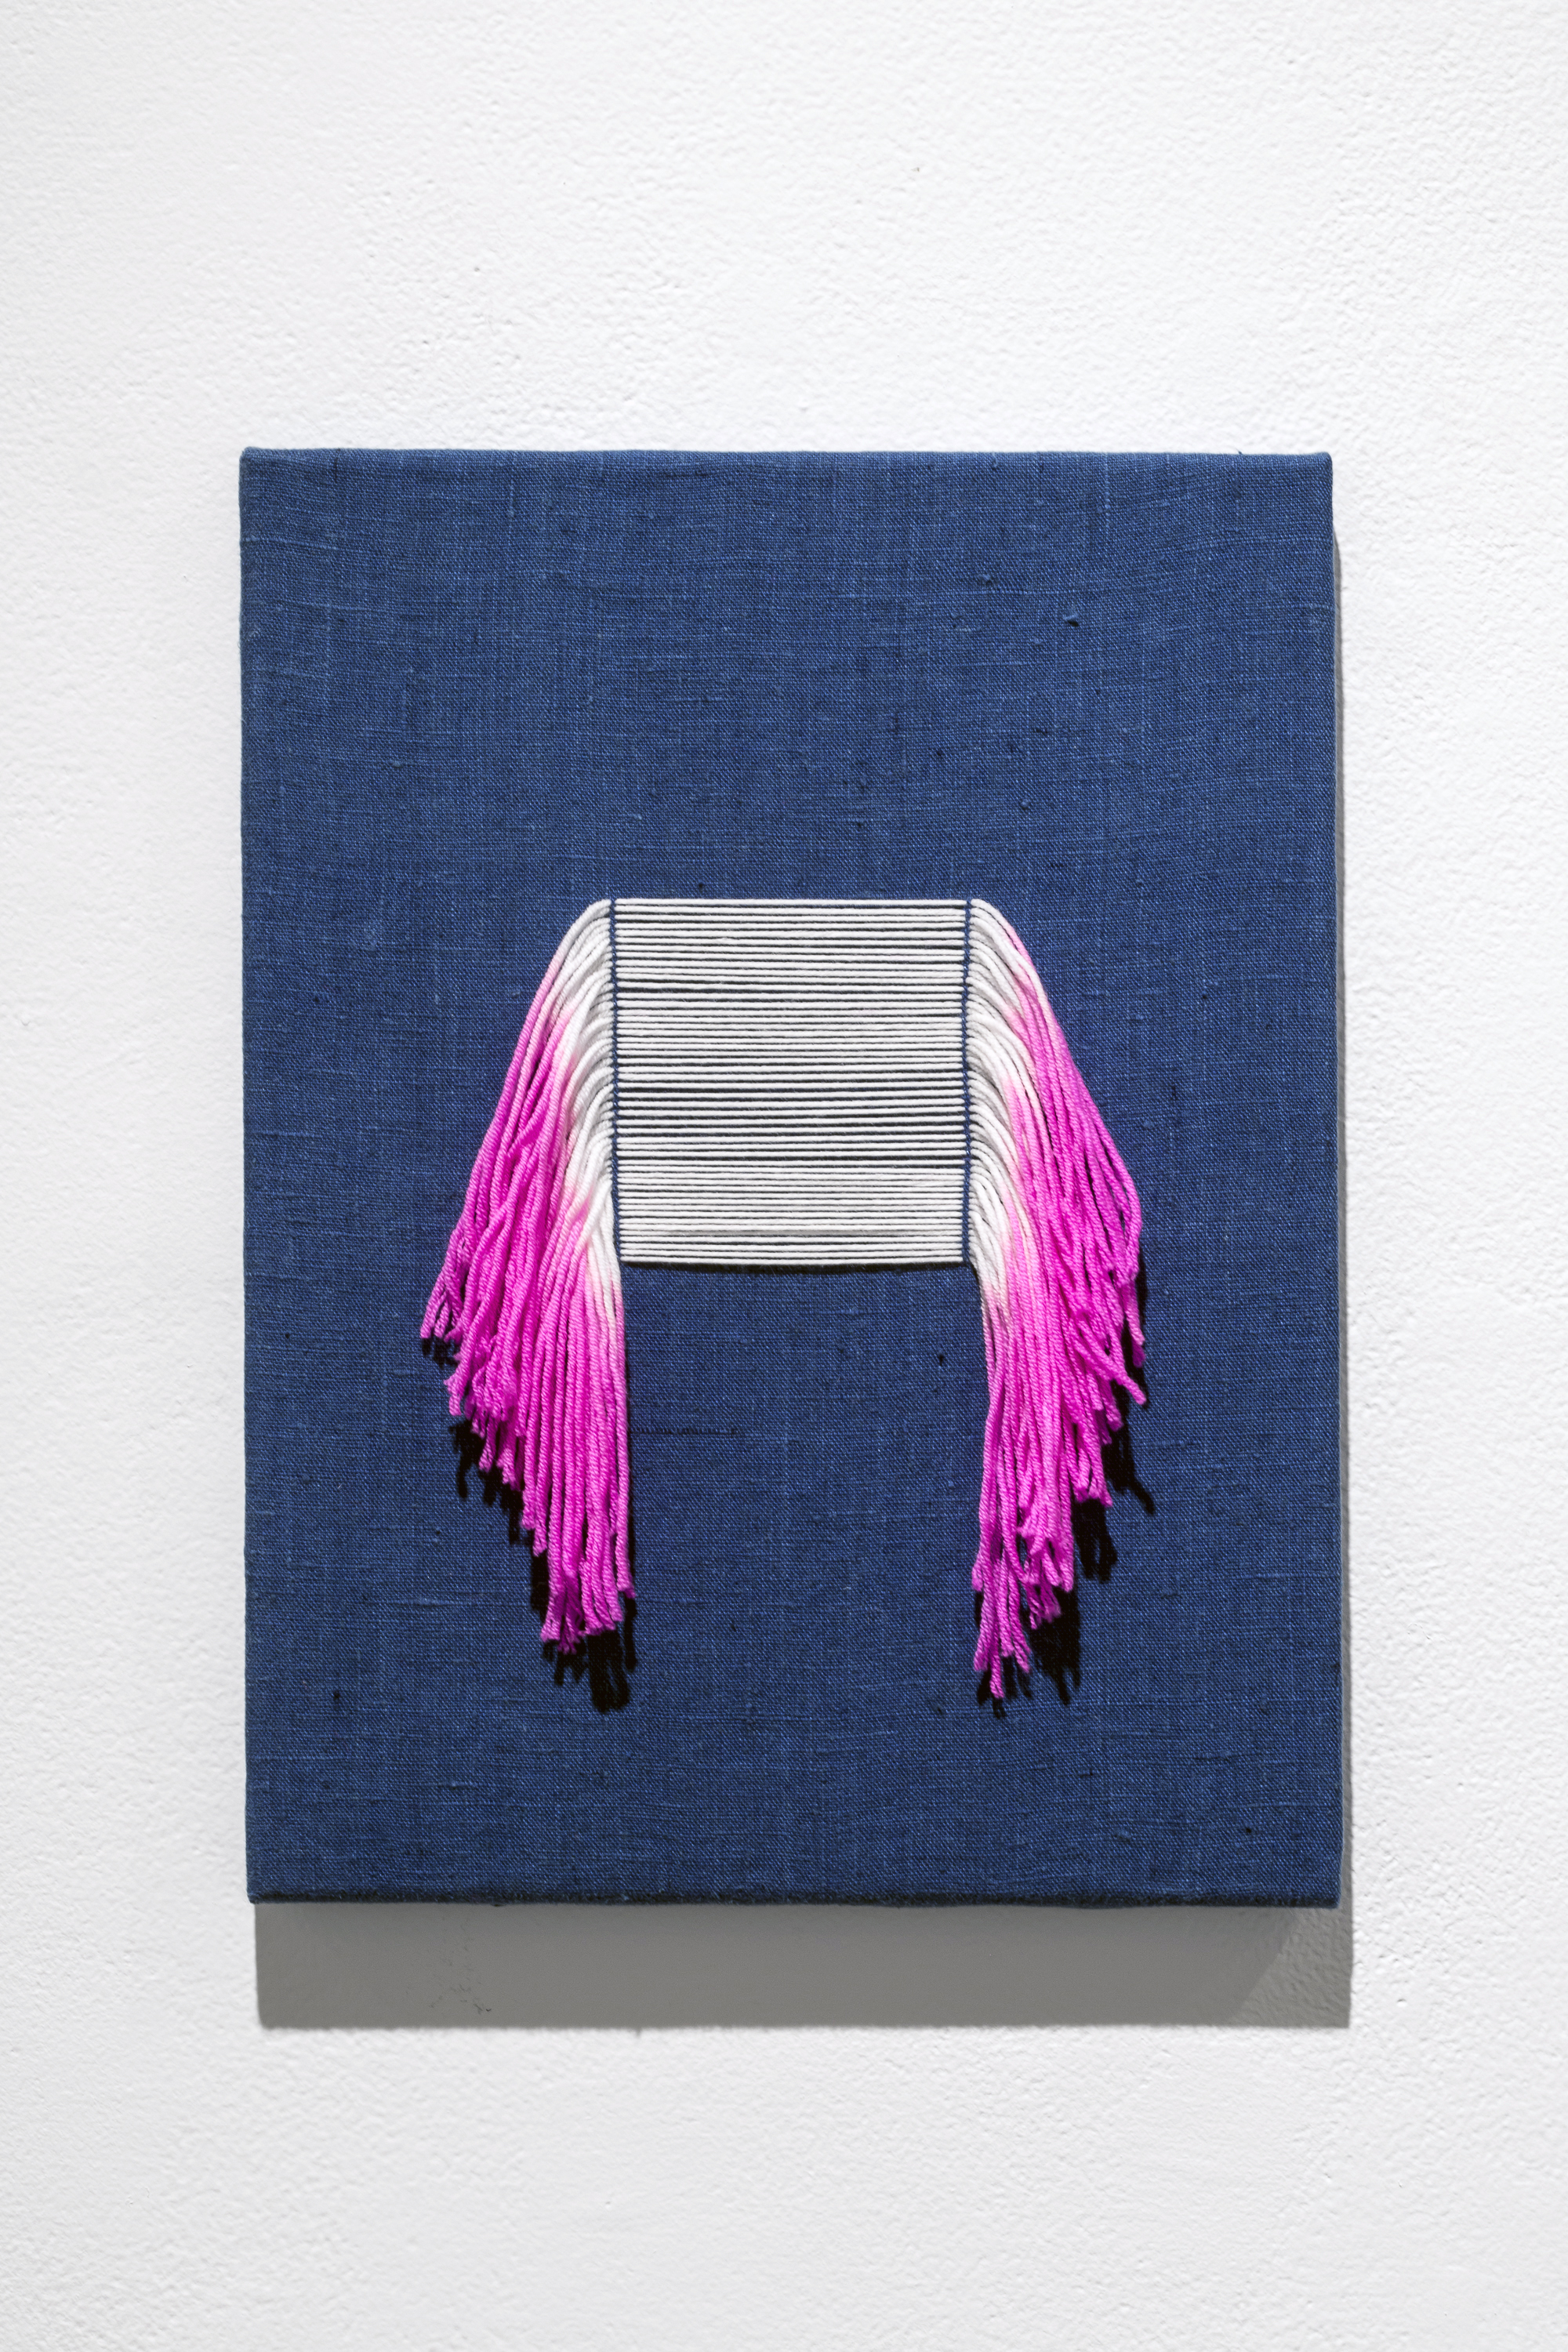 Painted Lines, 2014